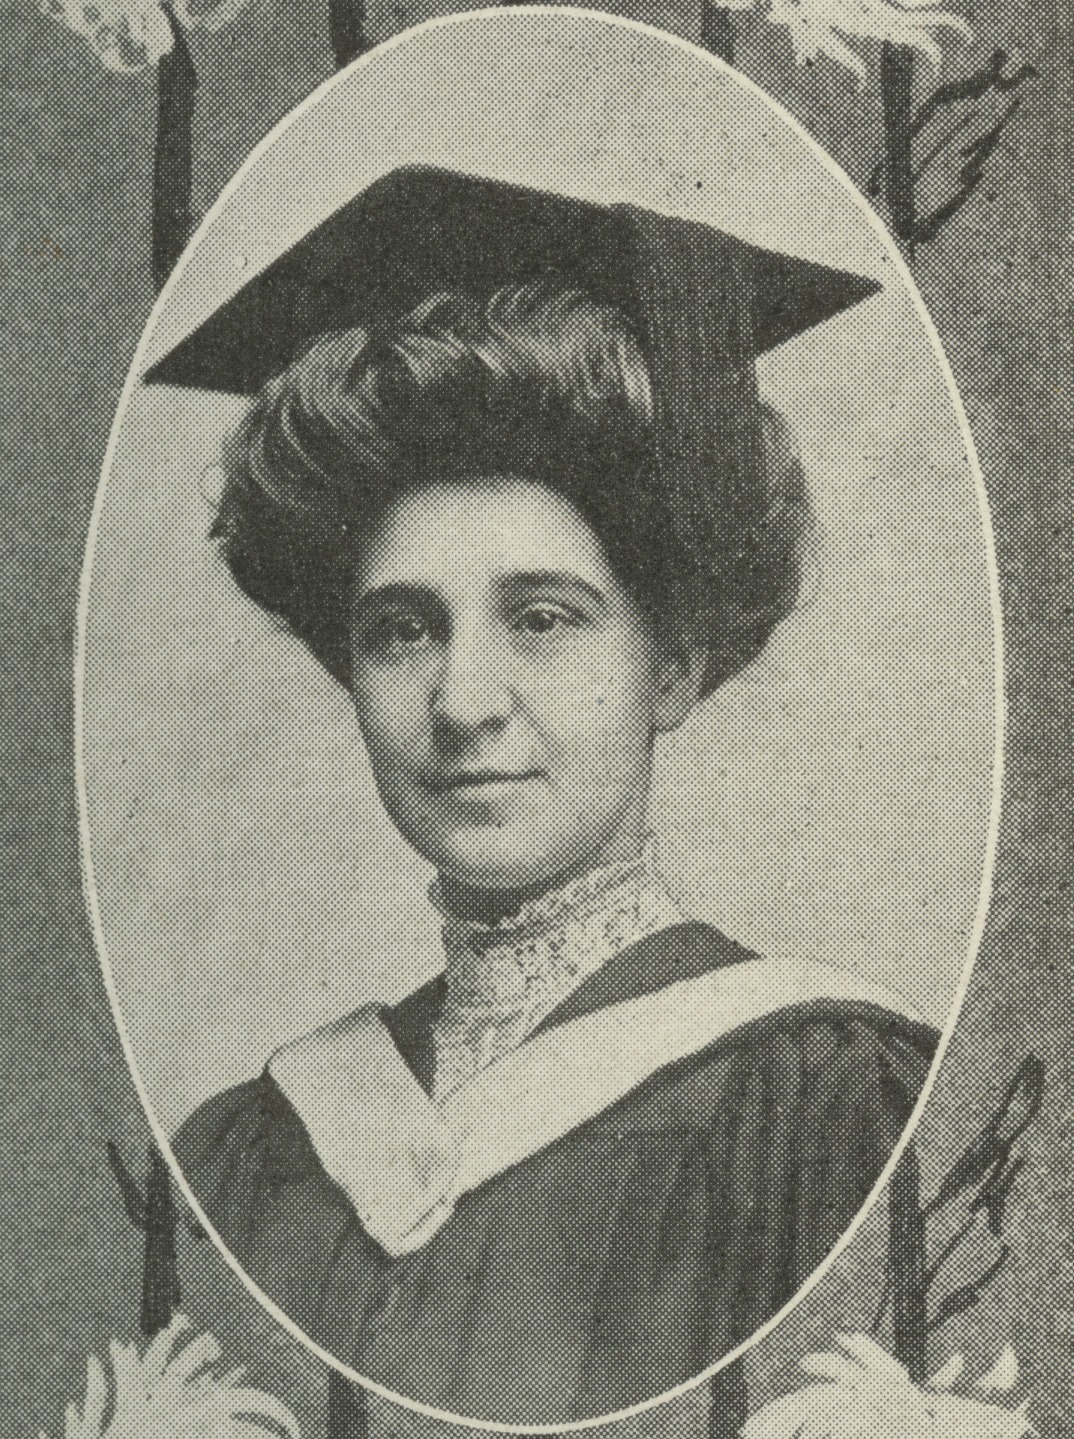 Photograph of Susie May Ames, courtesy of the Library of Virginia.